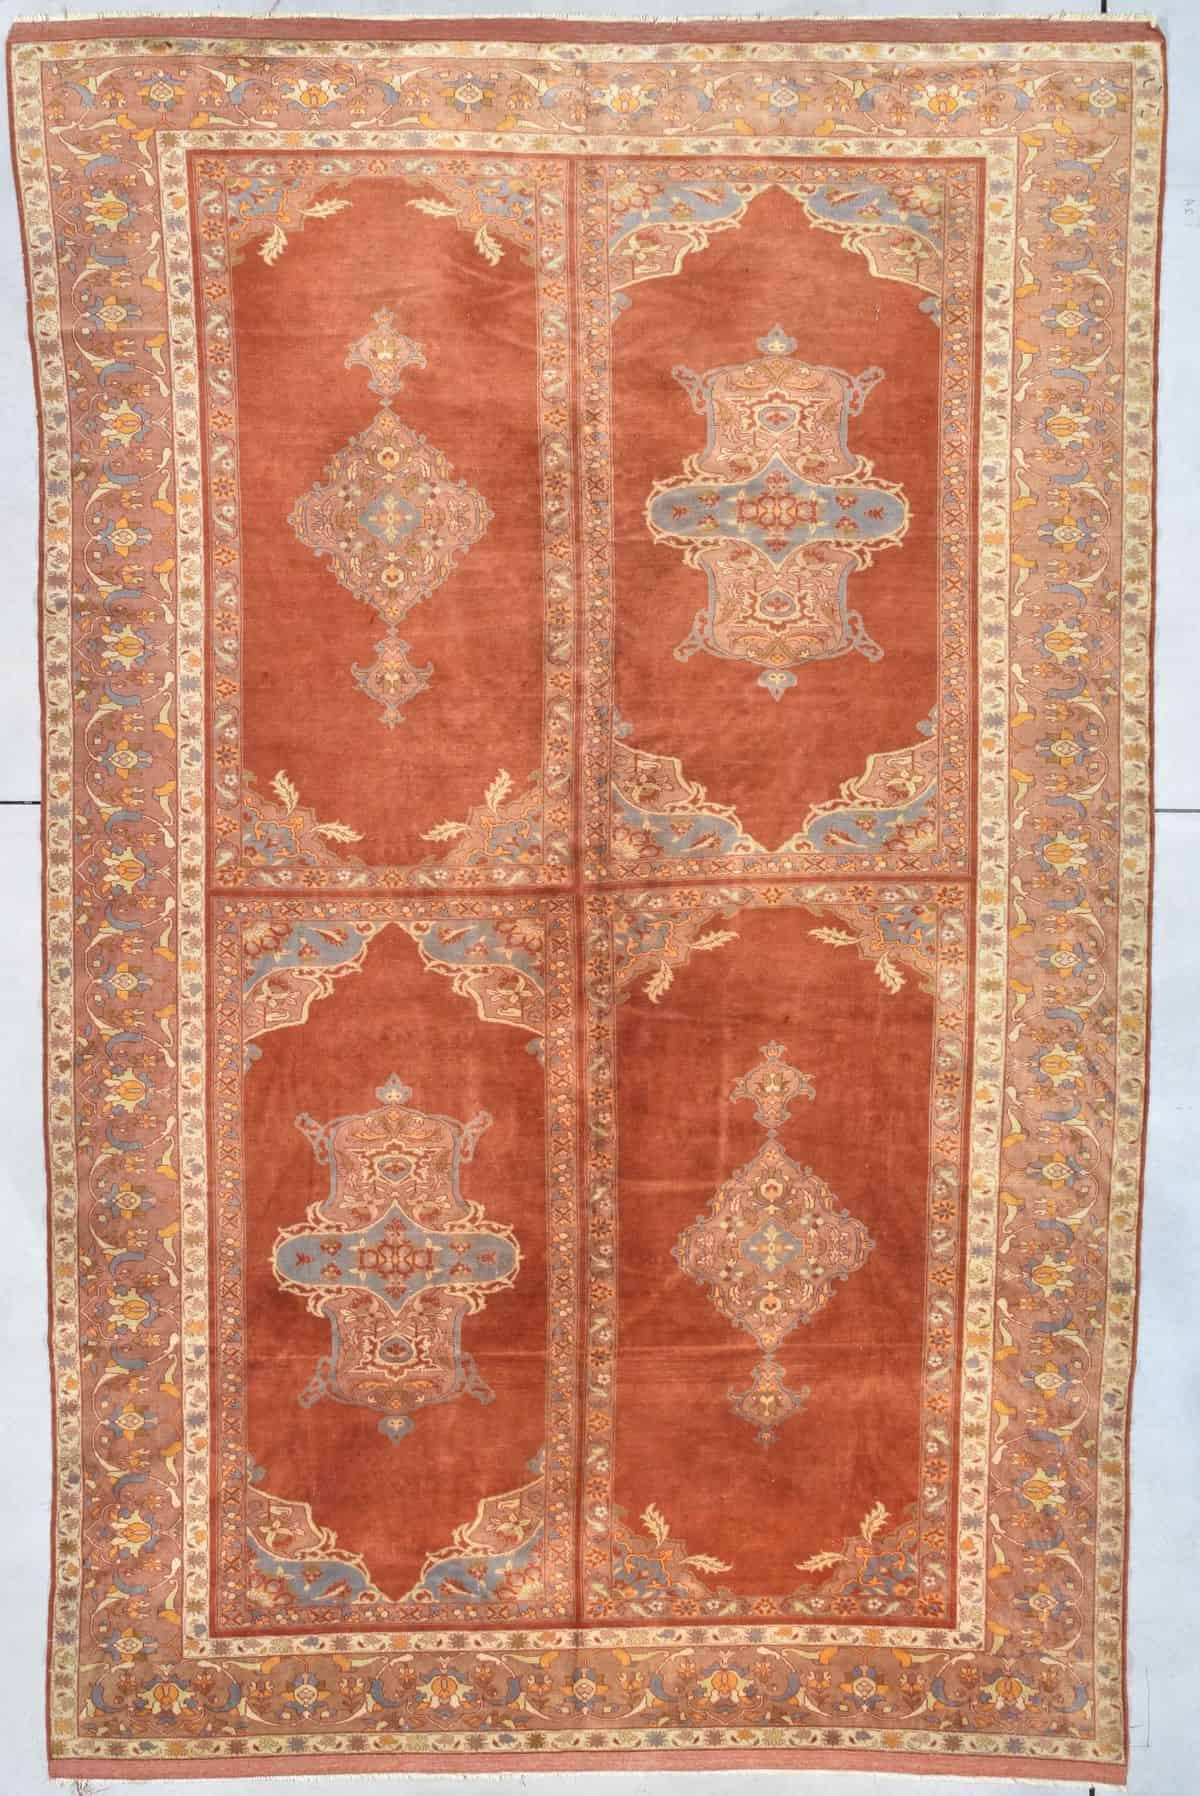 "Antique Amritsar Oriental Rug 7'4"" X 11'4"" #8012antique amrisar carpet 8012 image"